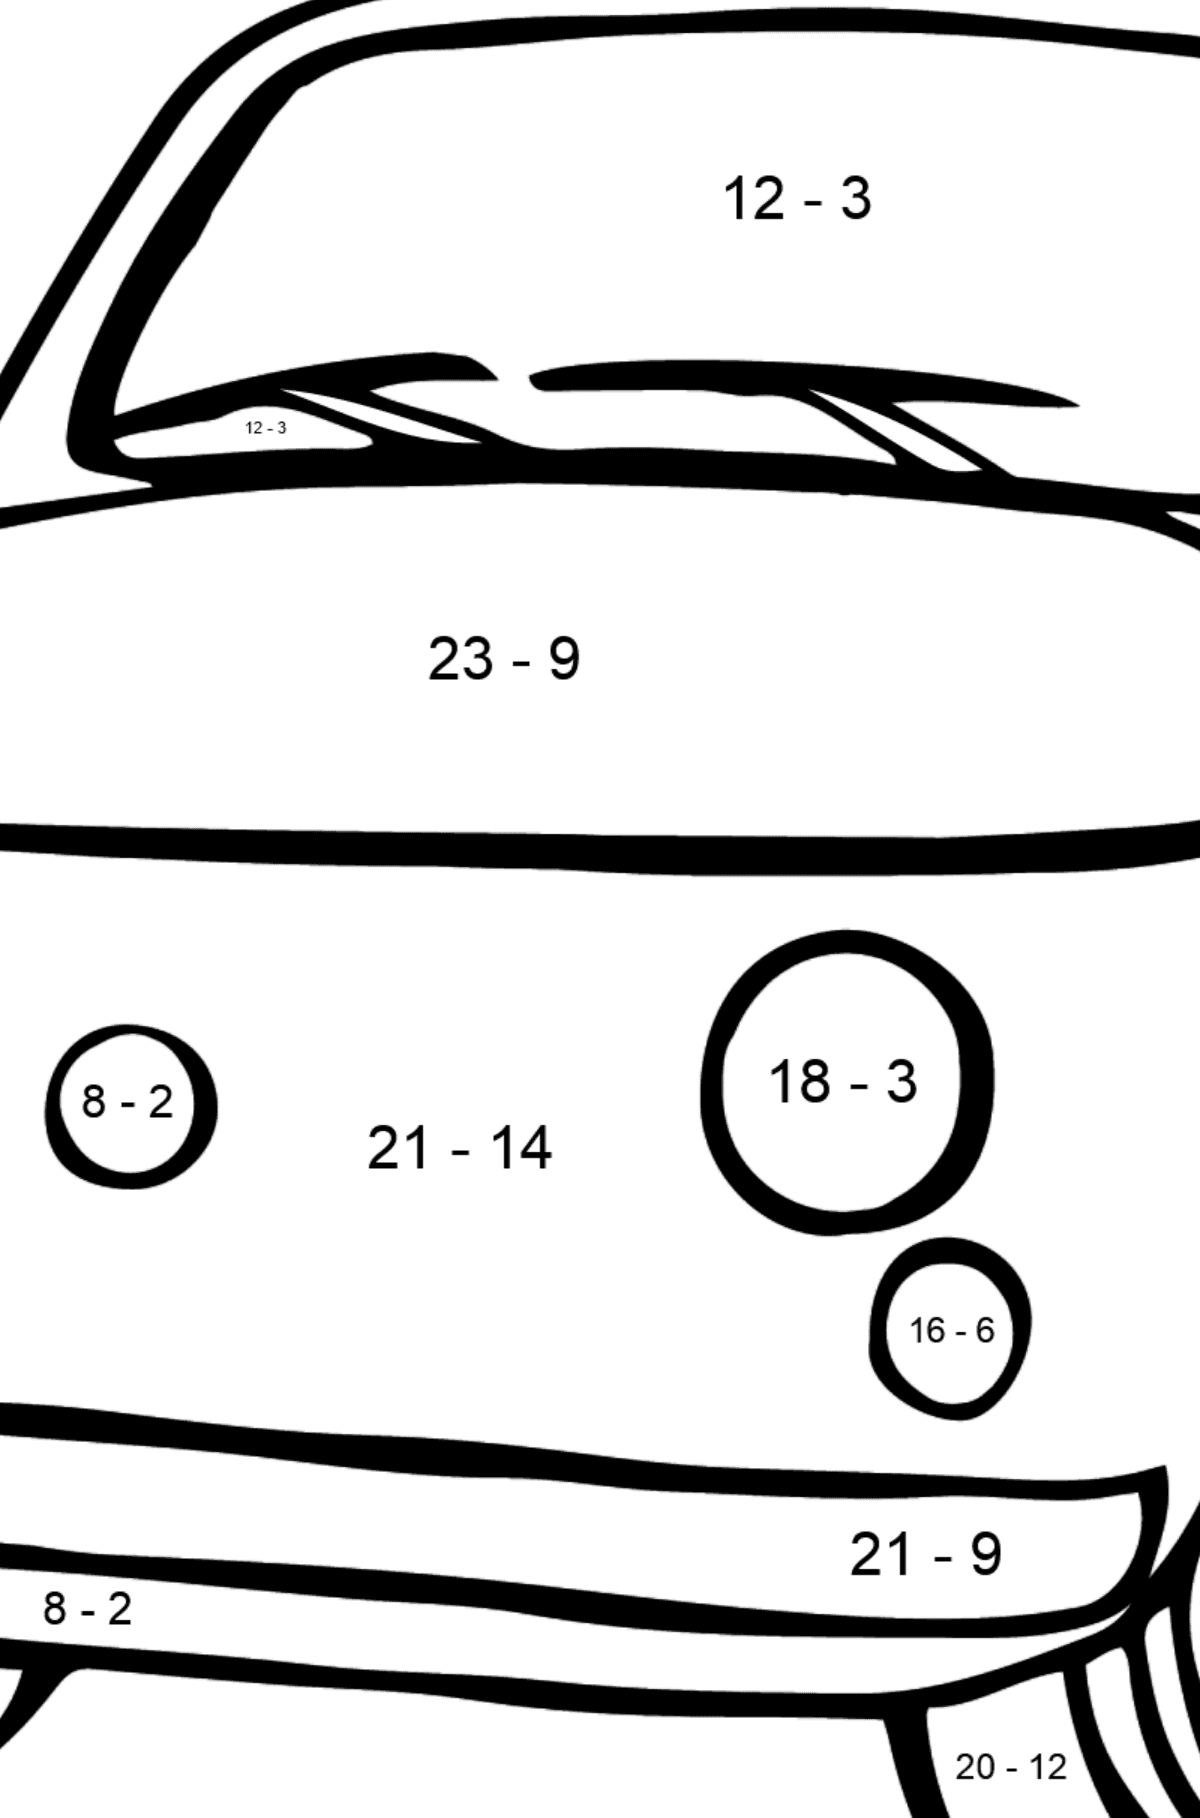 Fiat 500 (red car) coloring page - Math Coloring - Subtraction for Kids